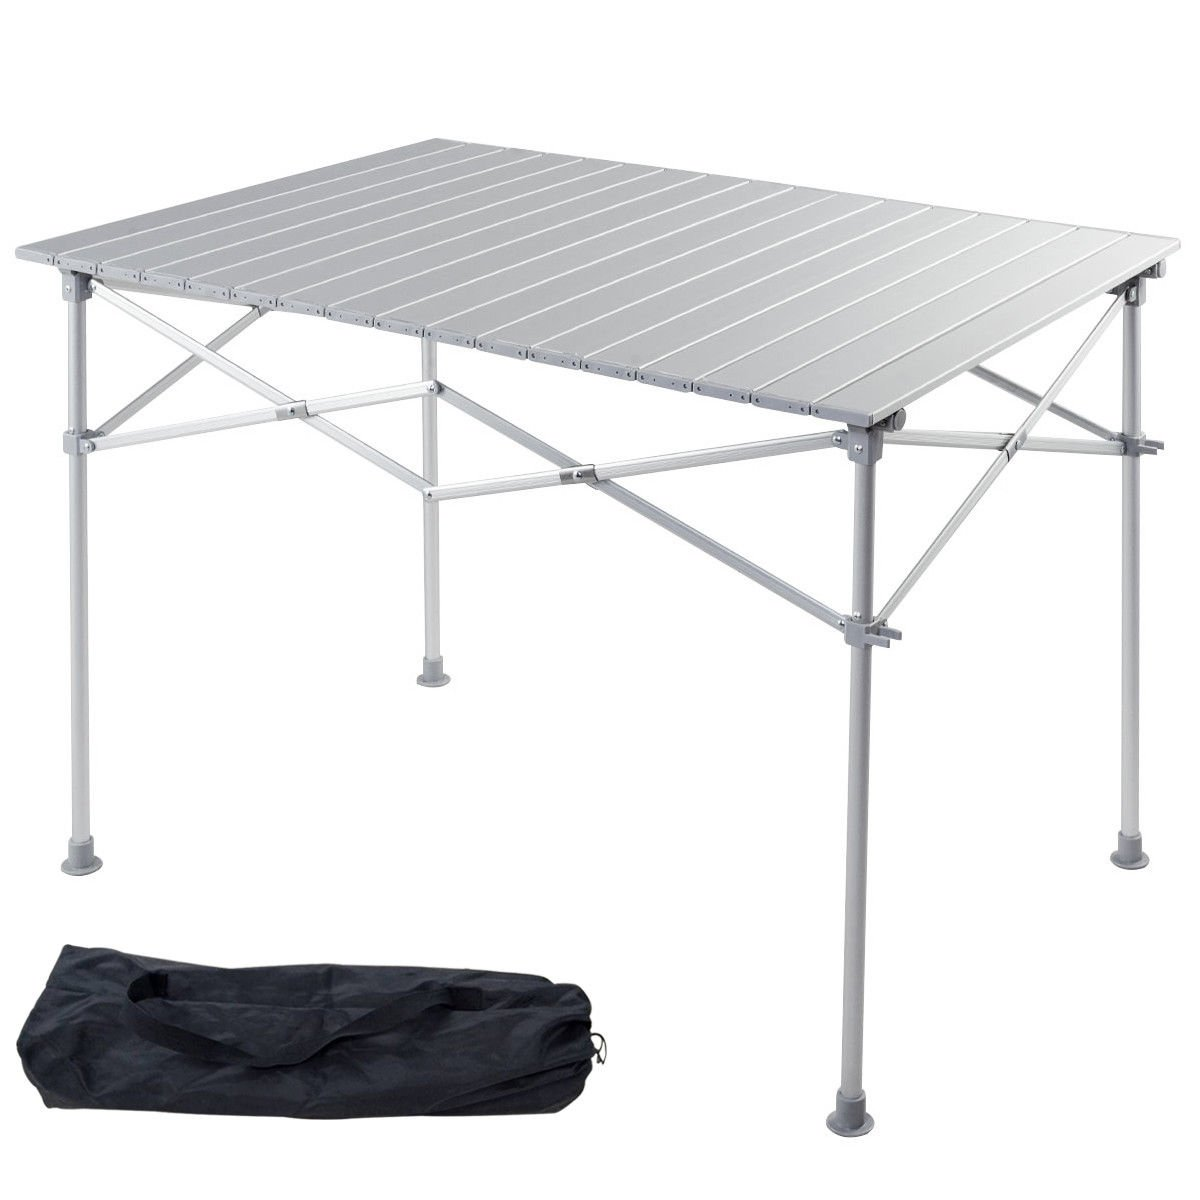 """Giantex Portable Aluminum Folding Table Lightweight Outdoor Roll up Camping Picnic Table Storage Bag (40"""" L x 28"""" W)"""